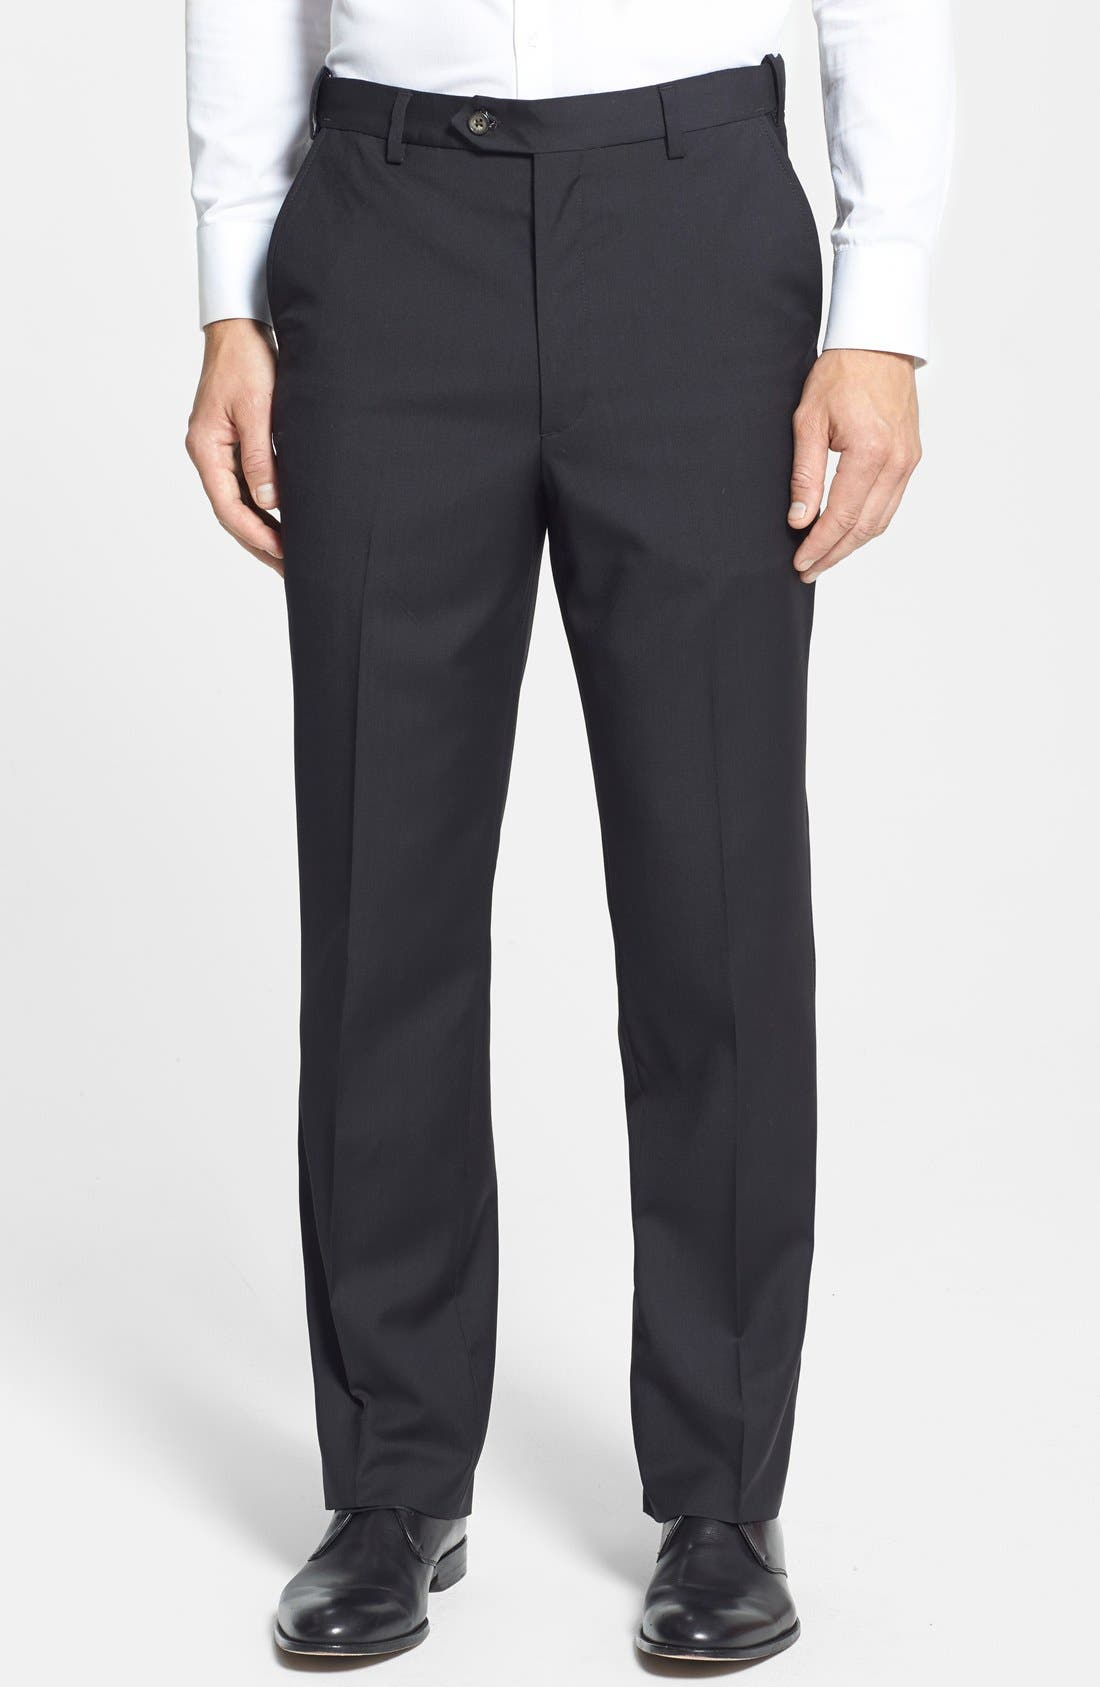 Self Sizer Waist Flat Front Wool Trousers,                         Main,                         color, Black